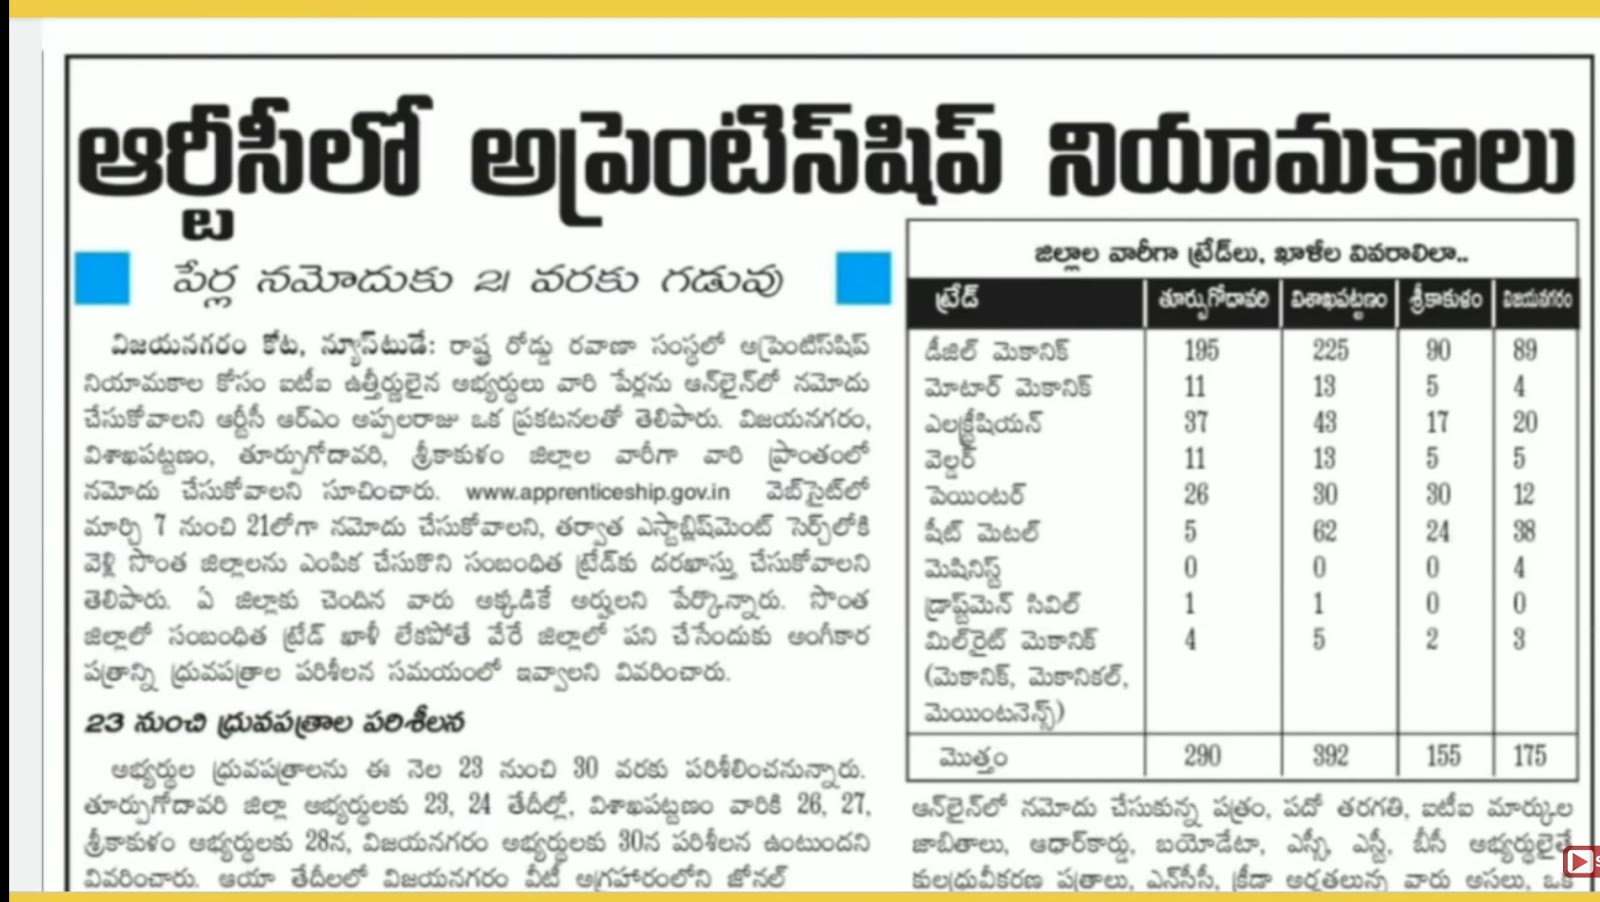 APSRTC Apprenticeship Notification